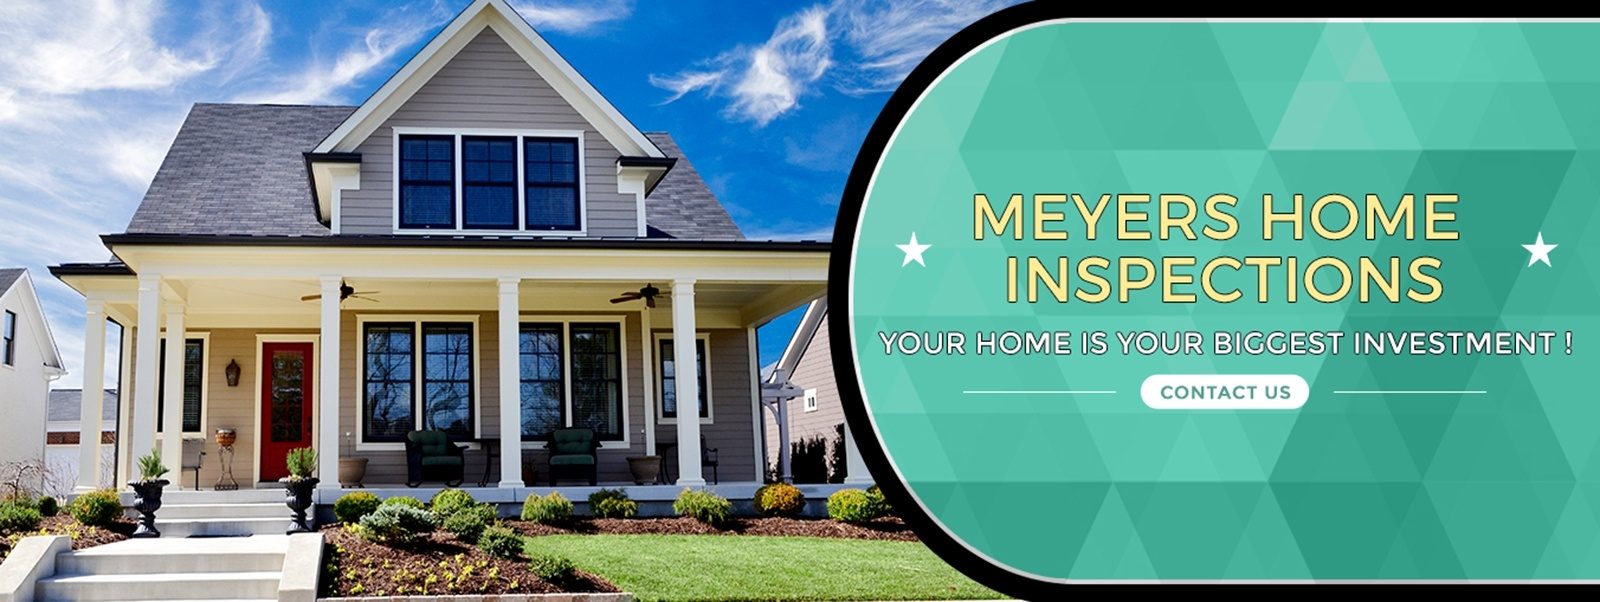 home inspection company New Jersey